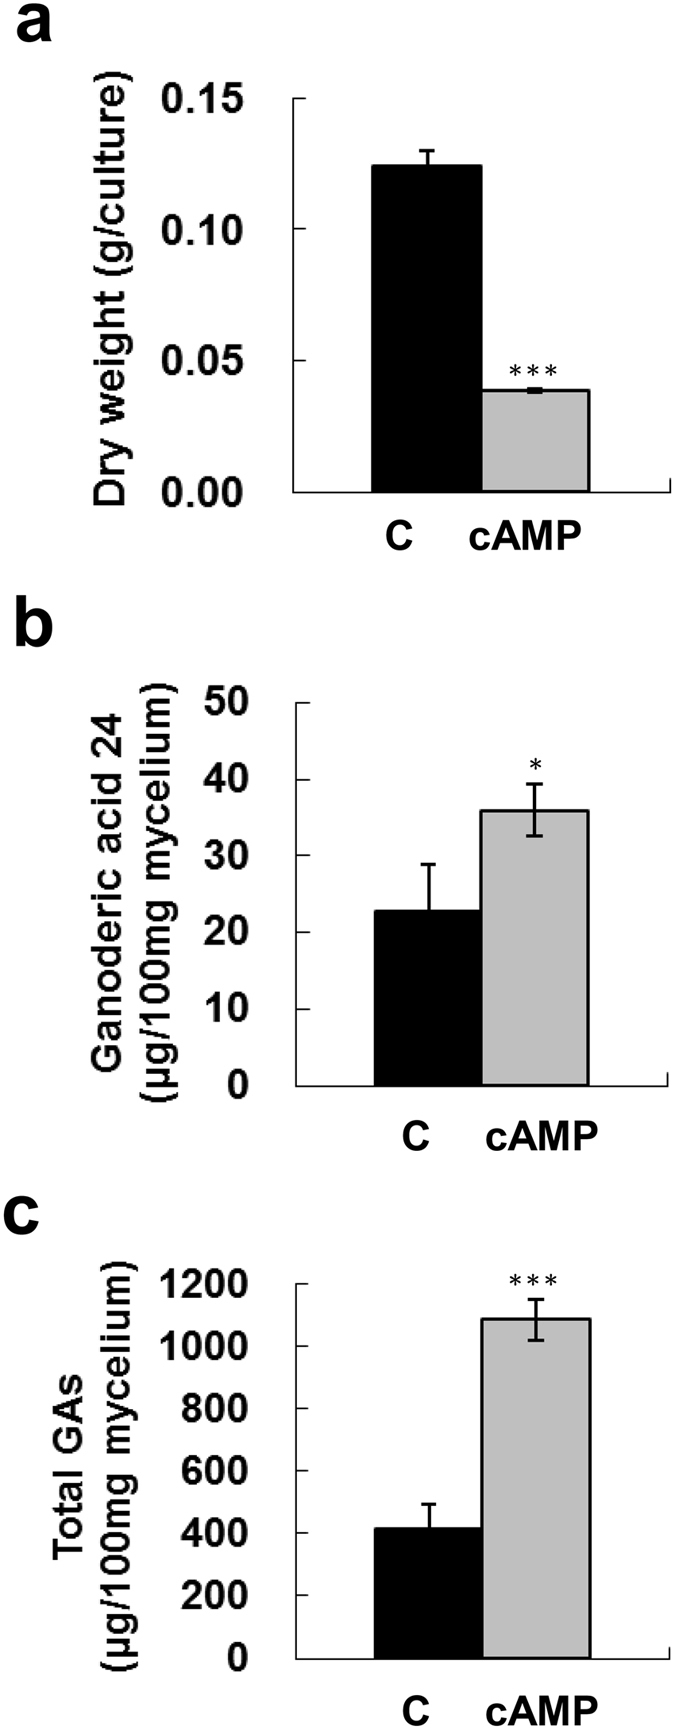 Effect of cAMP and IBMX co-treatment on fungal biomass and production of ganoderic acids. Four-day-old fungal mycelium was cultured on potato dextrose agar (PDA) in 5.5-cm diameter petri dishes and then incubated with 40 mM cAMP and 15 mM IBMX in potato dextrose broth (PDB) for 4 days. Dried mycelium was used to measure fungal biomass ( a ). Lanosta-7,9(11), 24-trien-3α-o1-26-oic acid (ganoderic acid 24) ( b ), and total ganoderic acids (GAs) ( c ) were measured by HPLC. The means of three independent samples with standard deviations are presented. * p